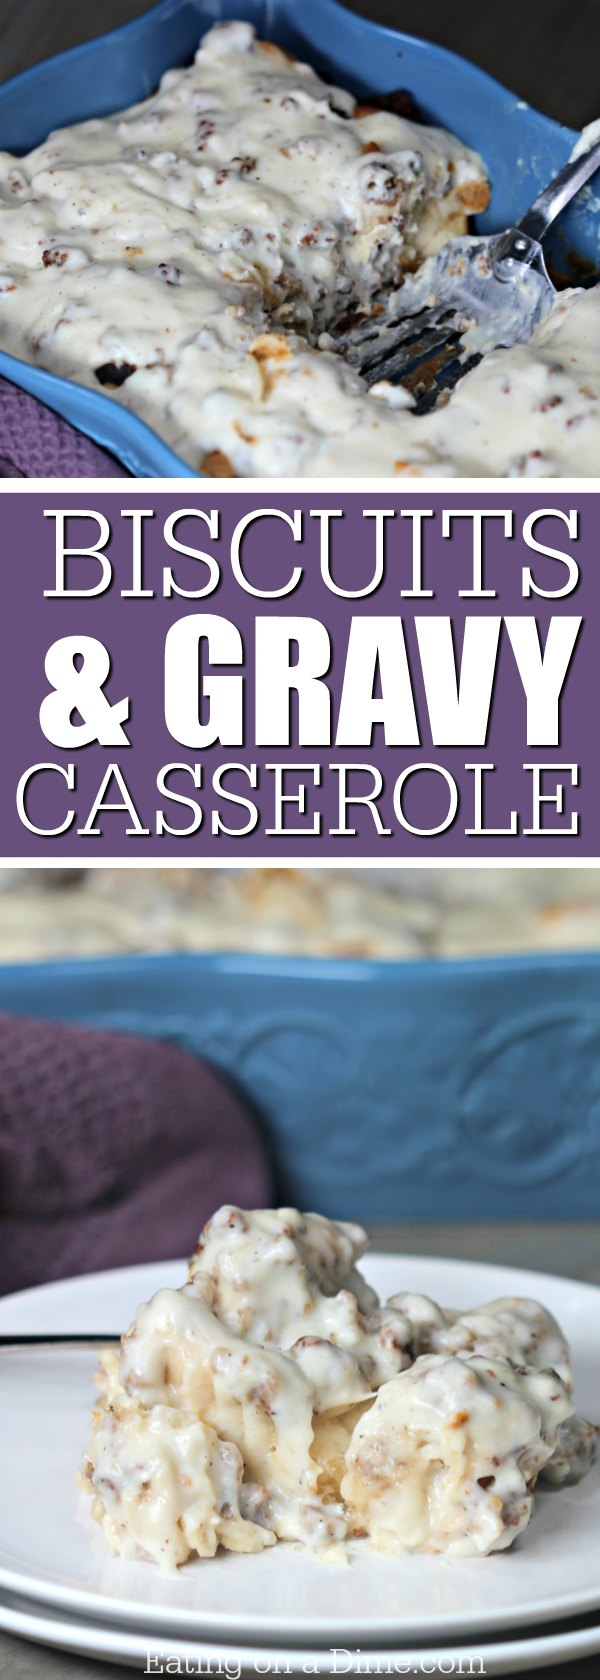 This Biscuits and gravy casserole is delicious! Try this easy gravy biscuit casserole. Kids will love this fun twist on the biscuits and gravy recipe!